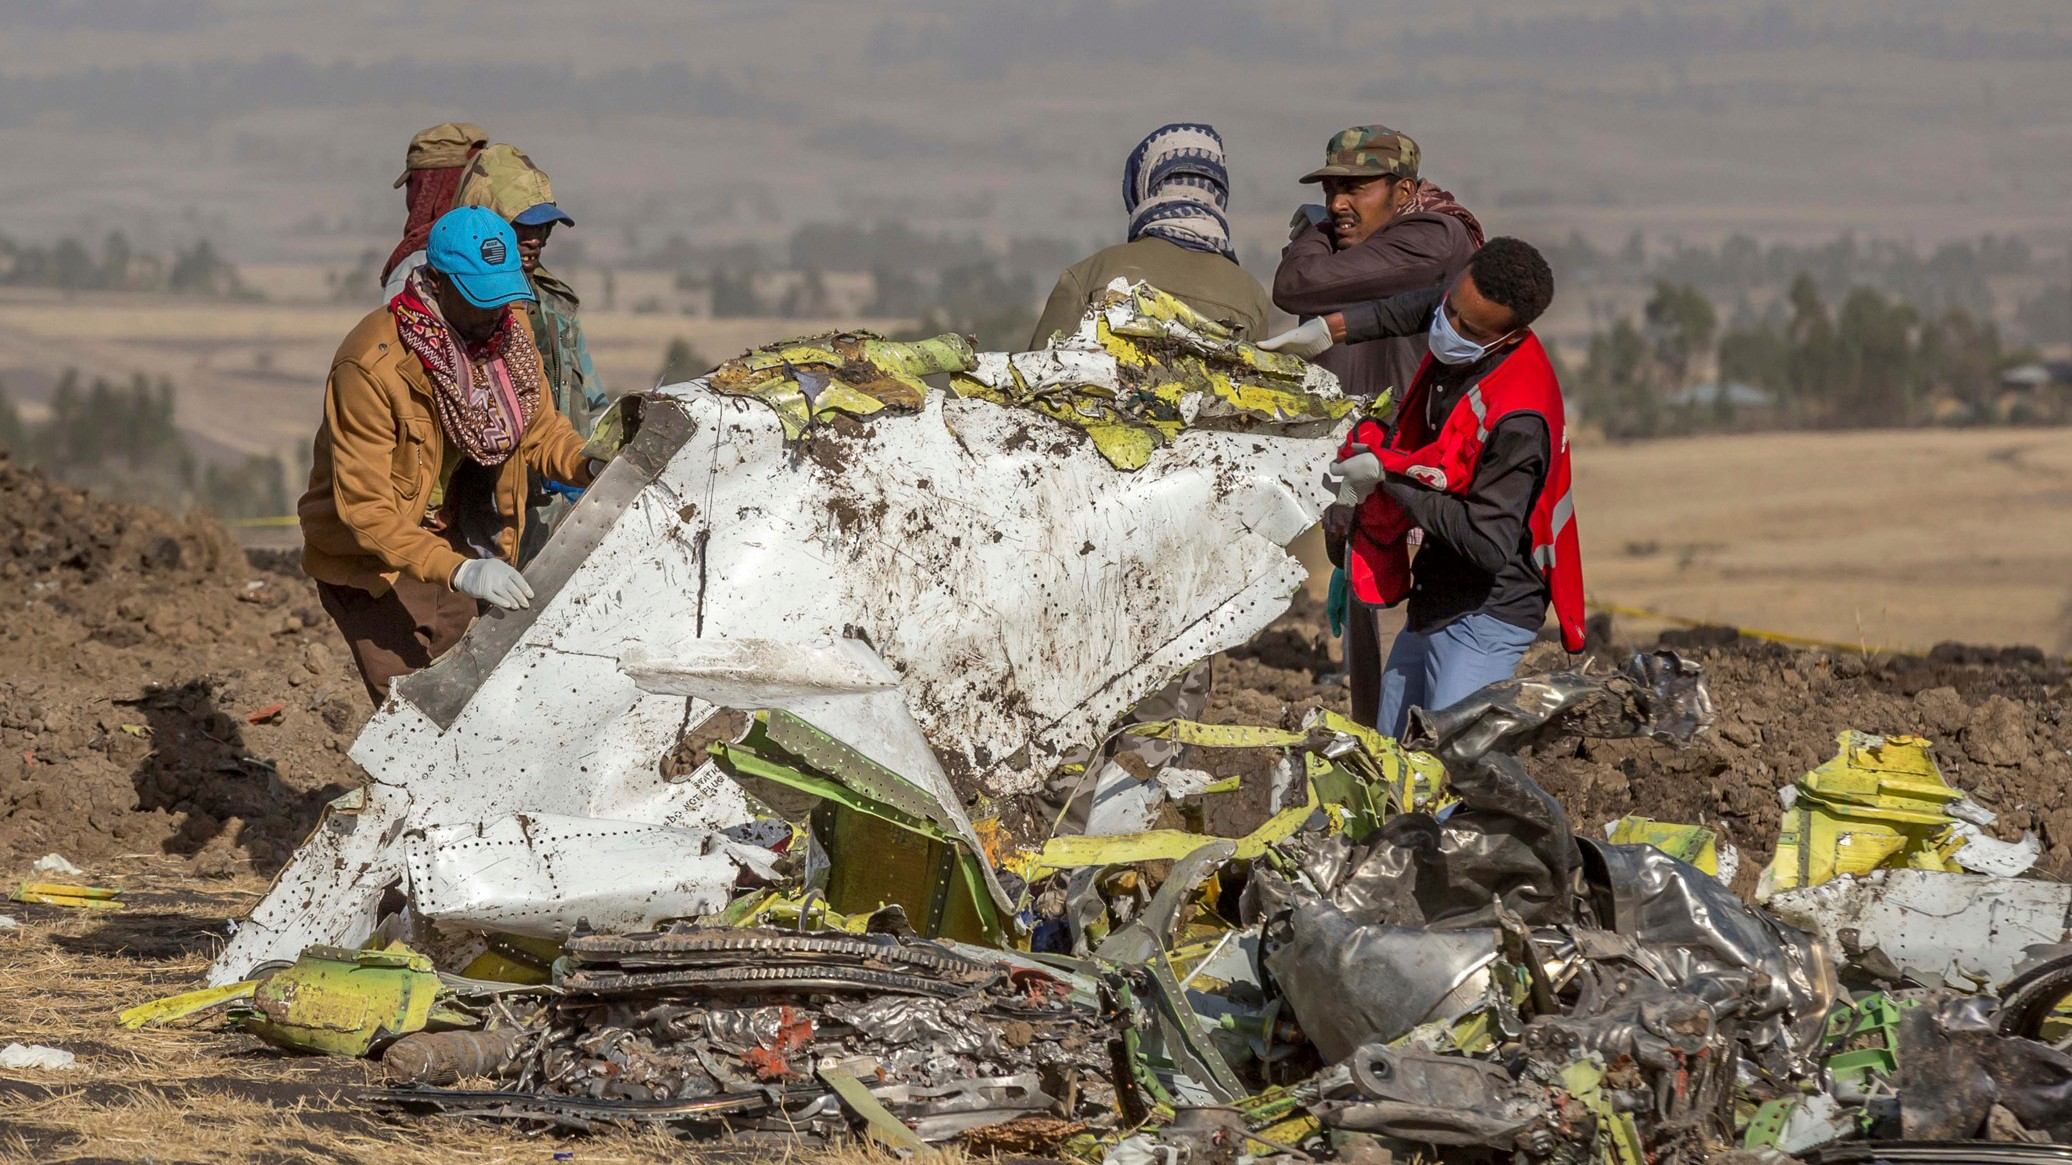 Here's what's in the first official report on the Ethiopian Airlines crash